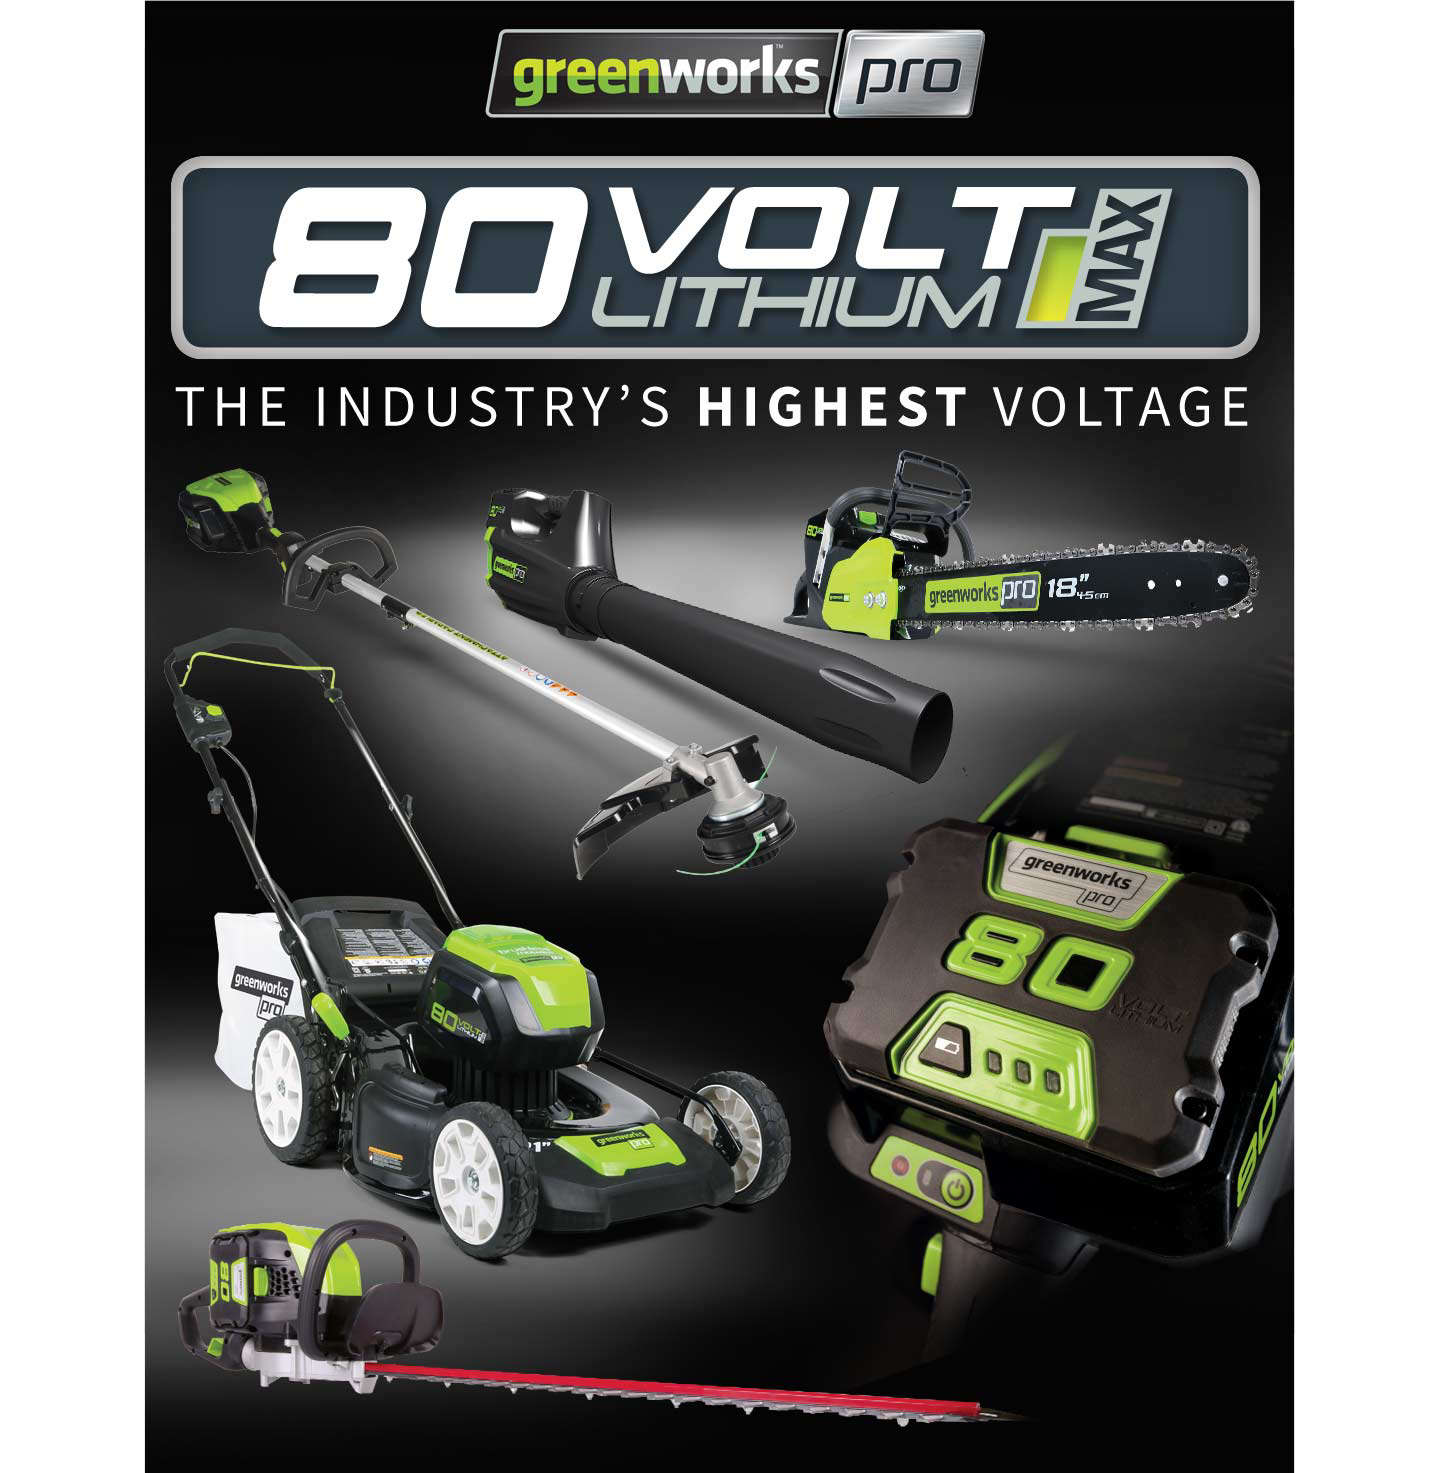 Greenworks 80Volt Battery Powered Garden Tools - Lawnmowers, Leaf Blowers and Chainsaws